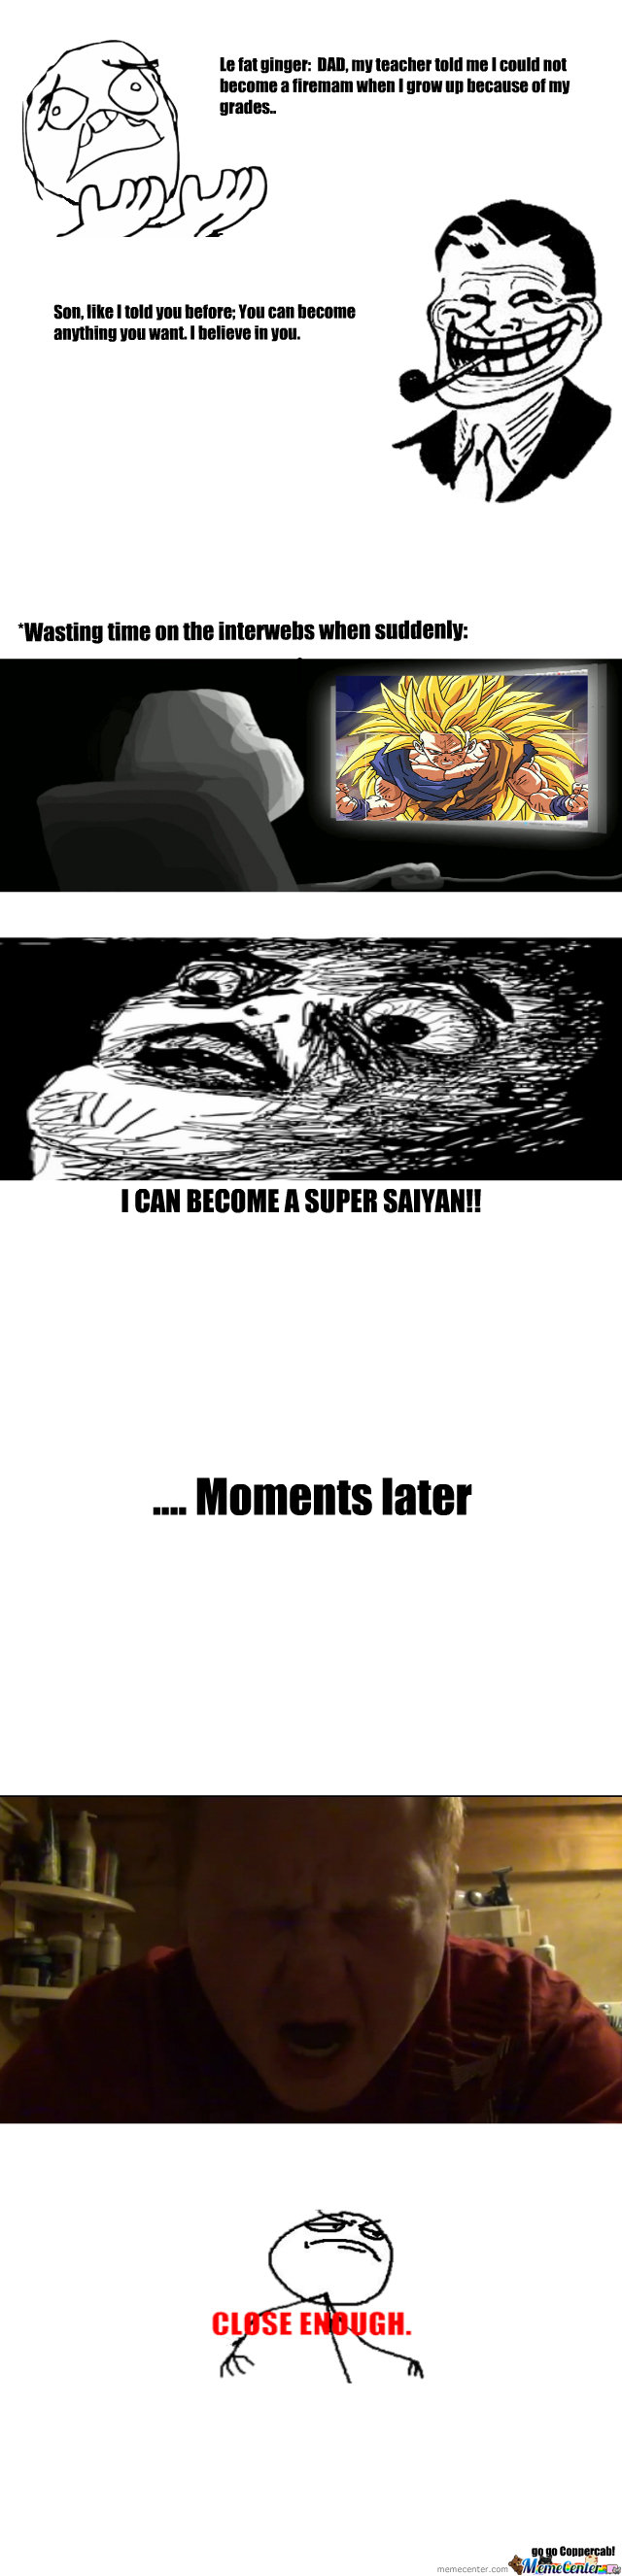 I Can Become A Super Saiyan